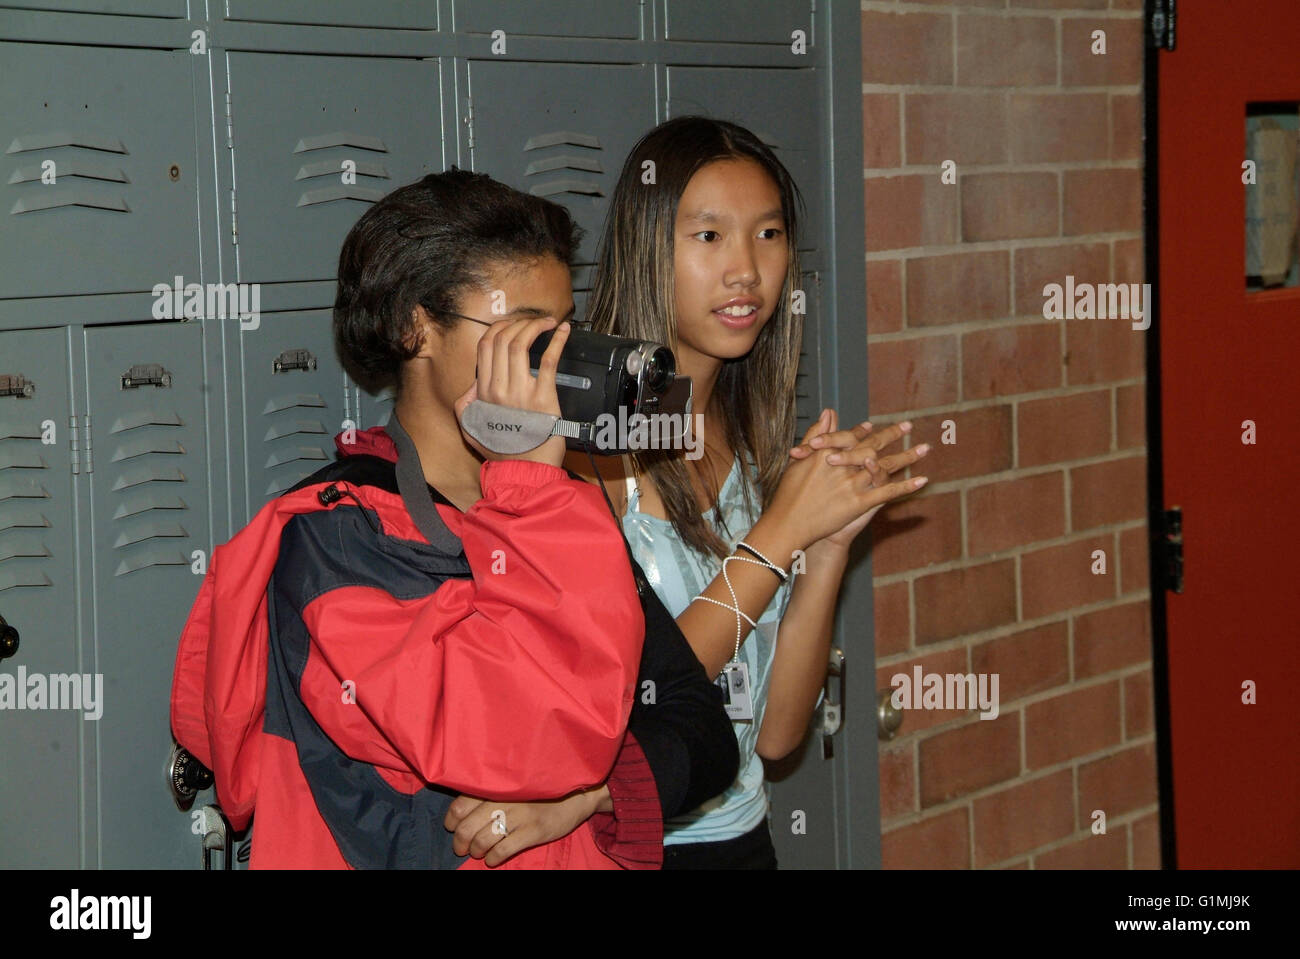 video teens Stock Photo - teens filming other students w video camera